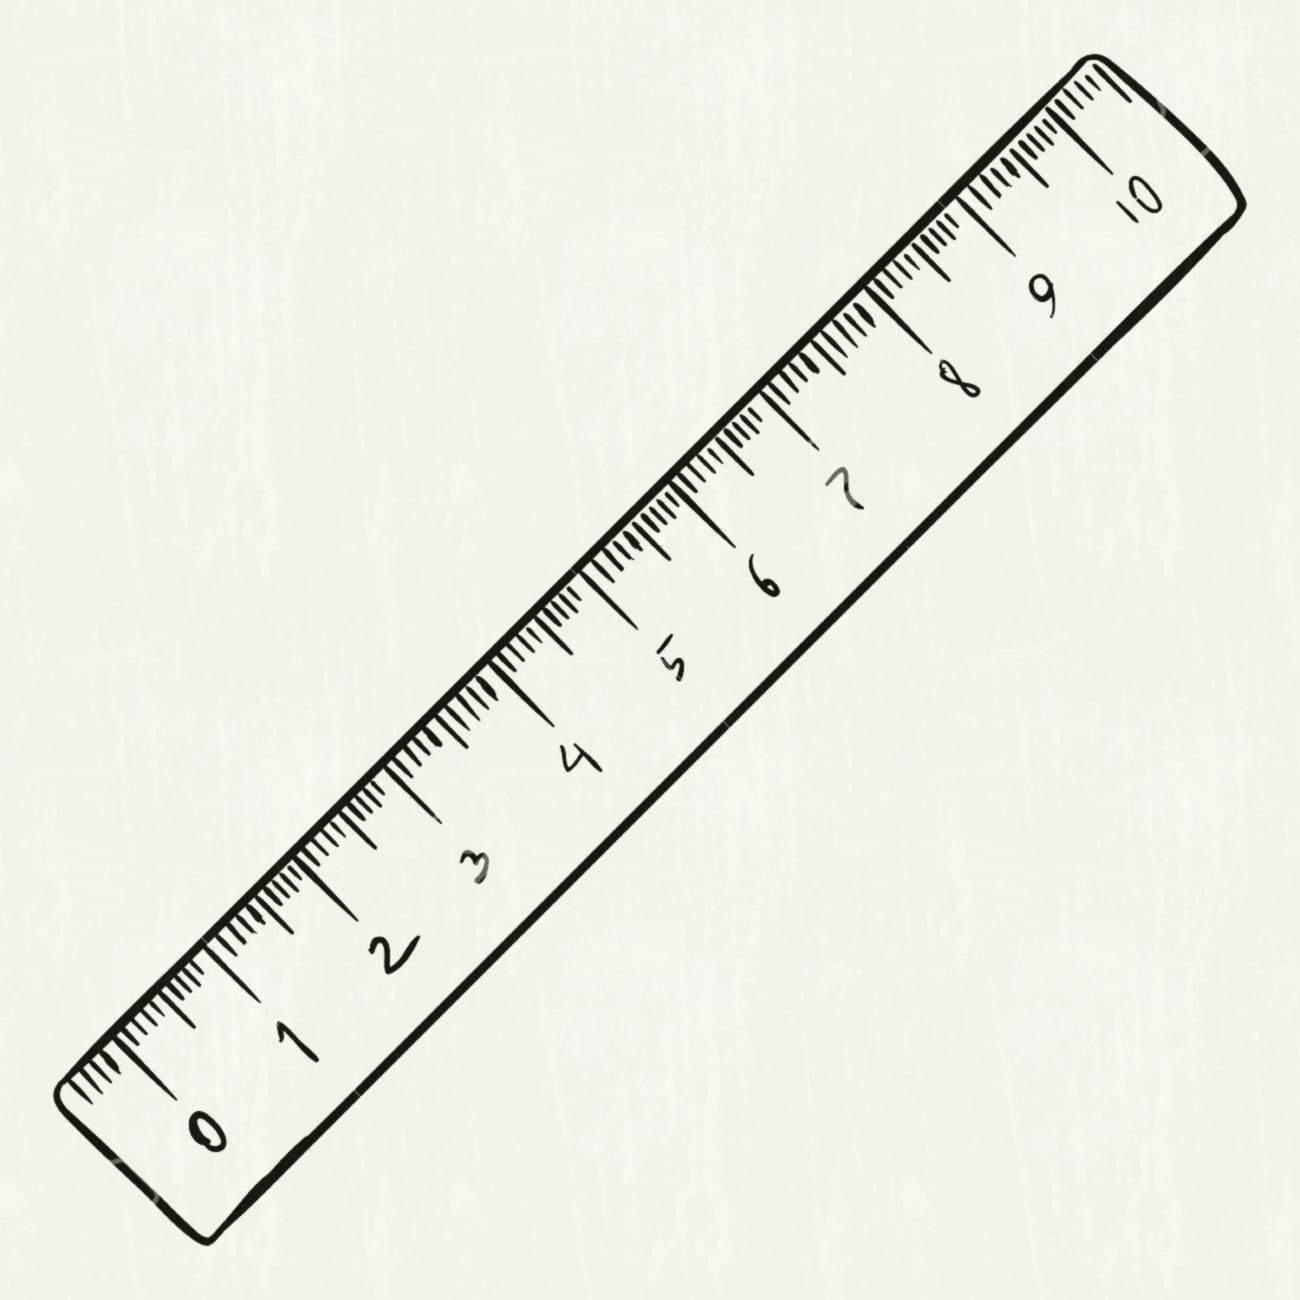 12 Inch Ruler Clipart Black And White Clipart Black And White